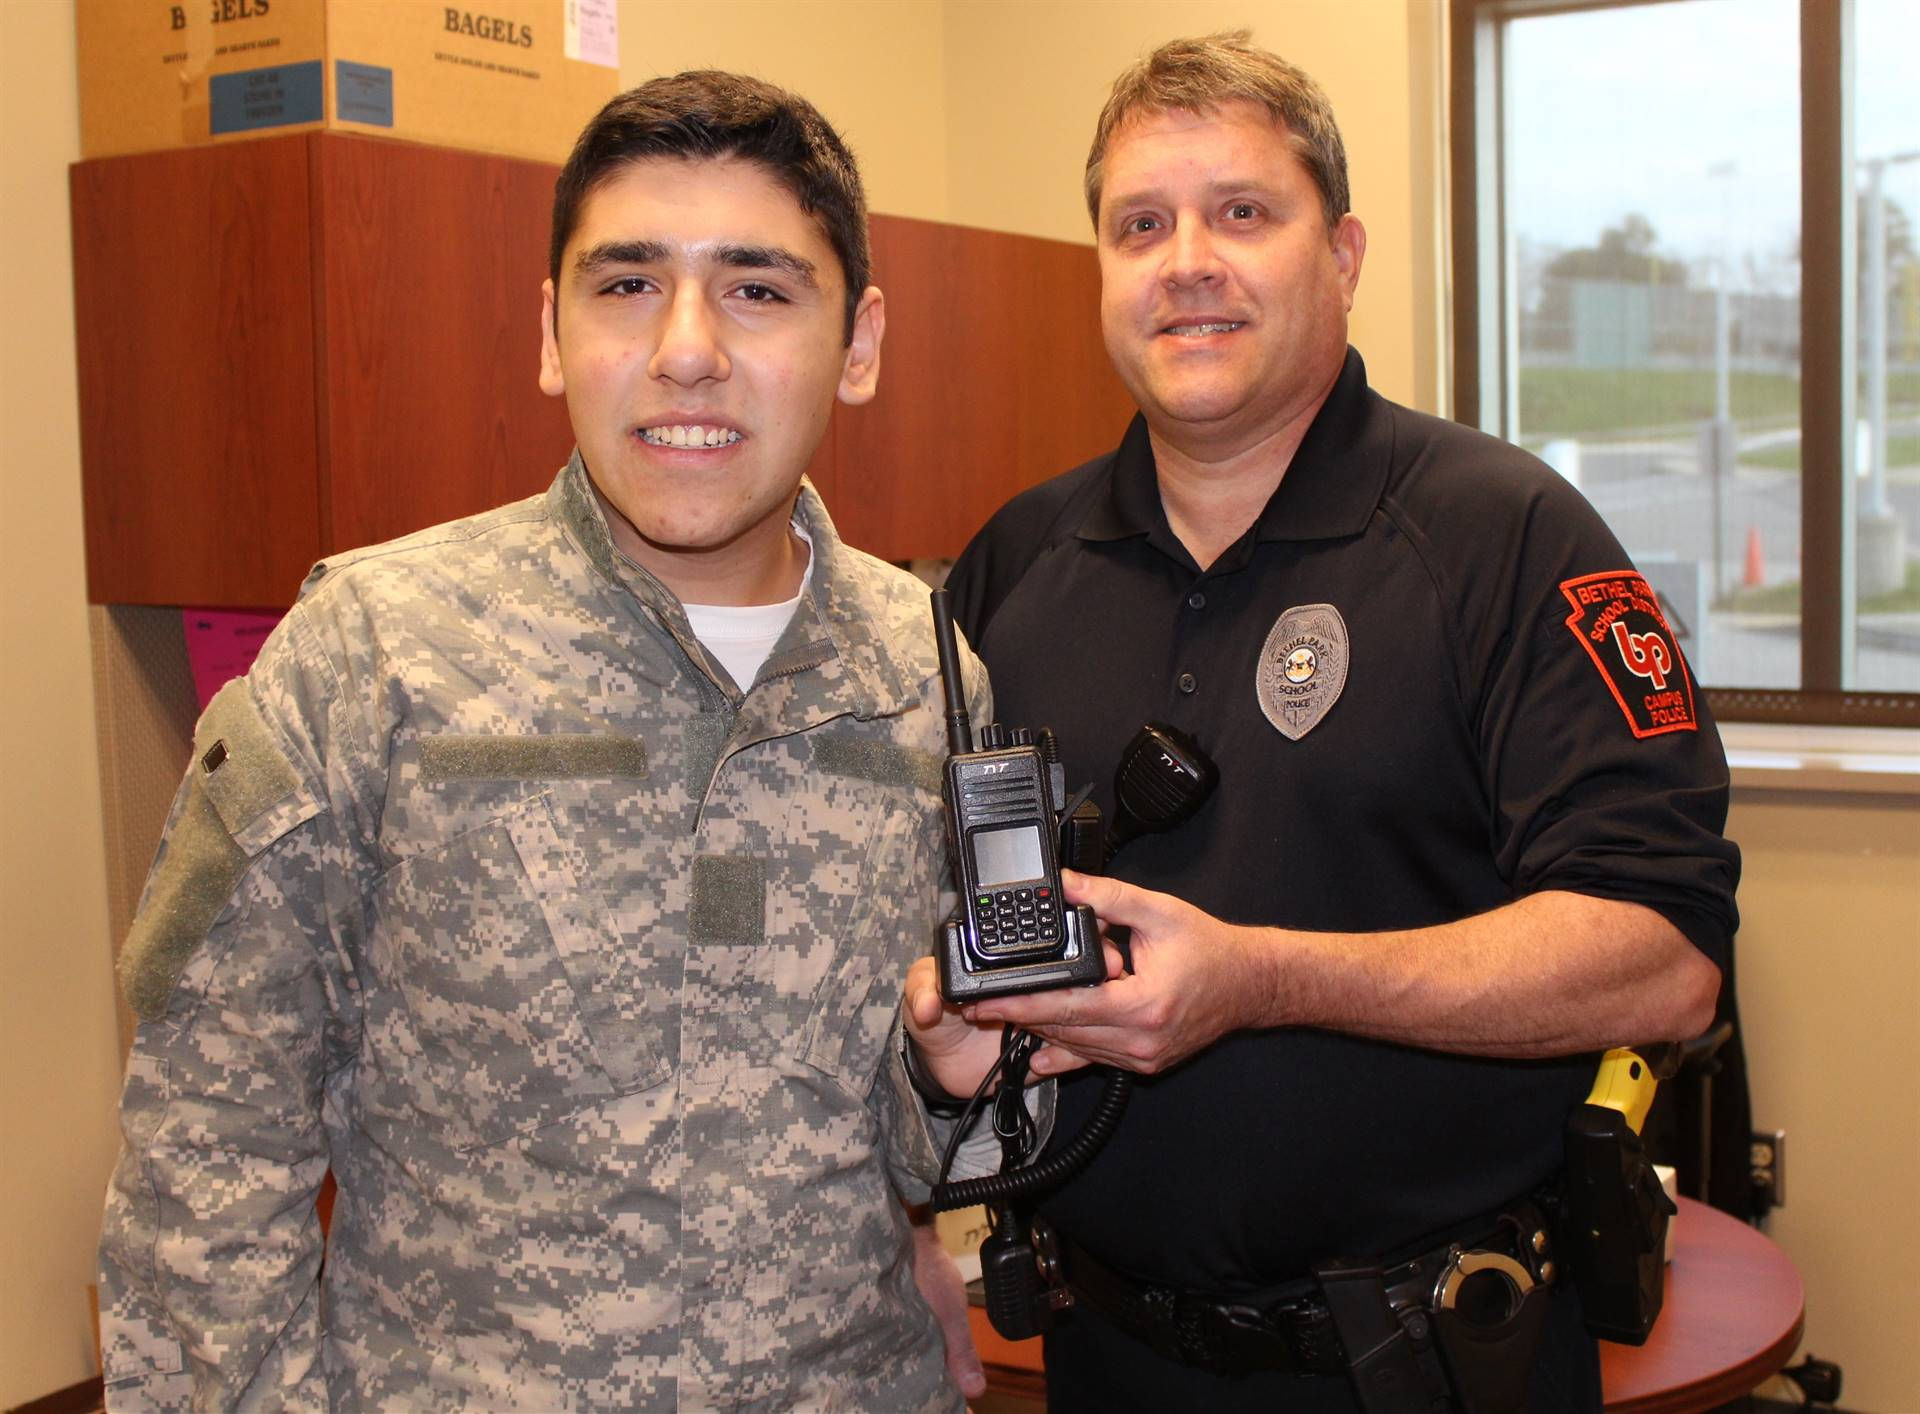 Blake Haggerty and Officer Kirsch with the new two-way radios that Blake recommended